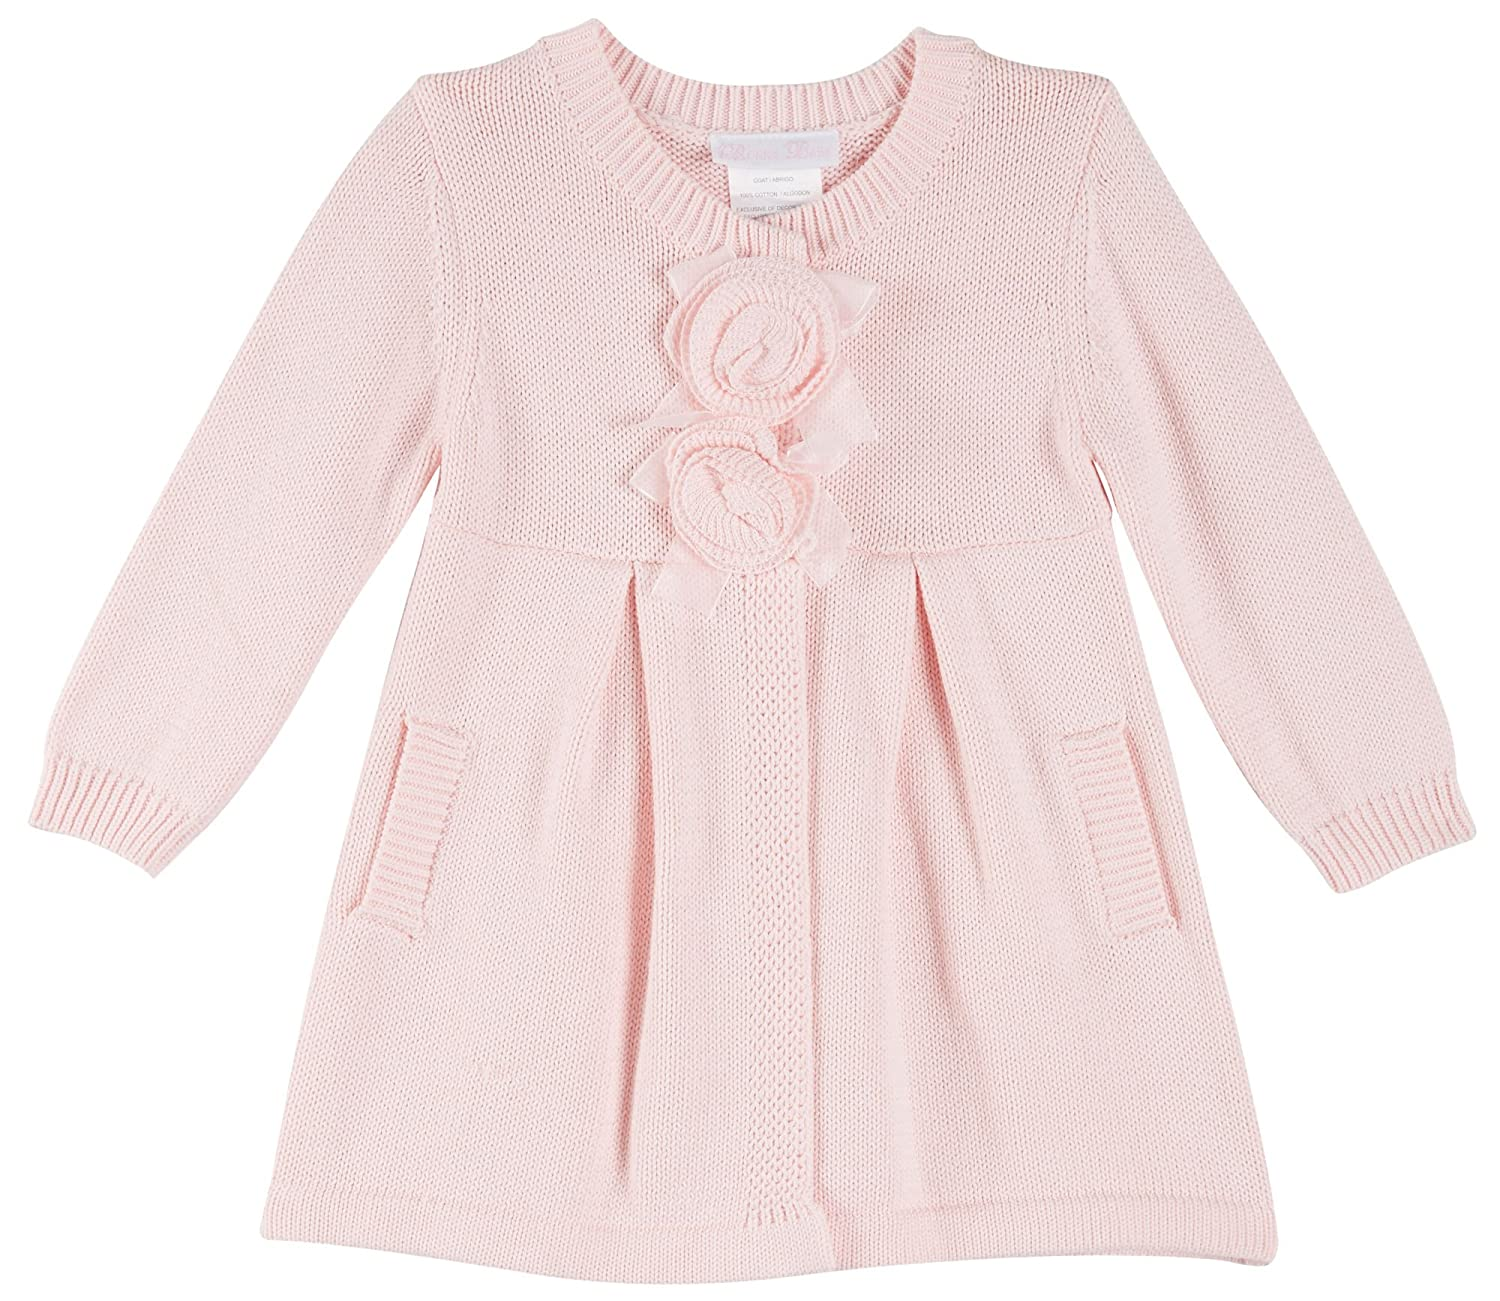 Bonnie Jean Baby Girls Pink Hooded Coatigan Sweater Jacket with Flowers